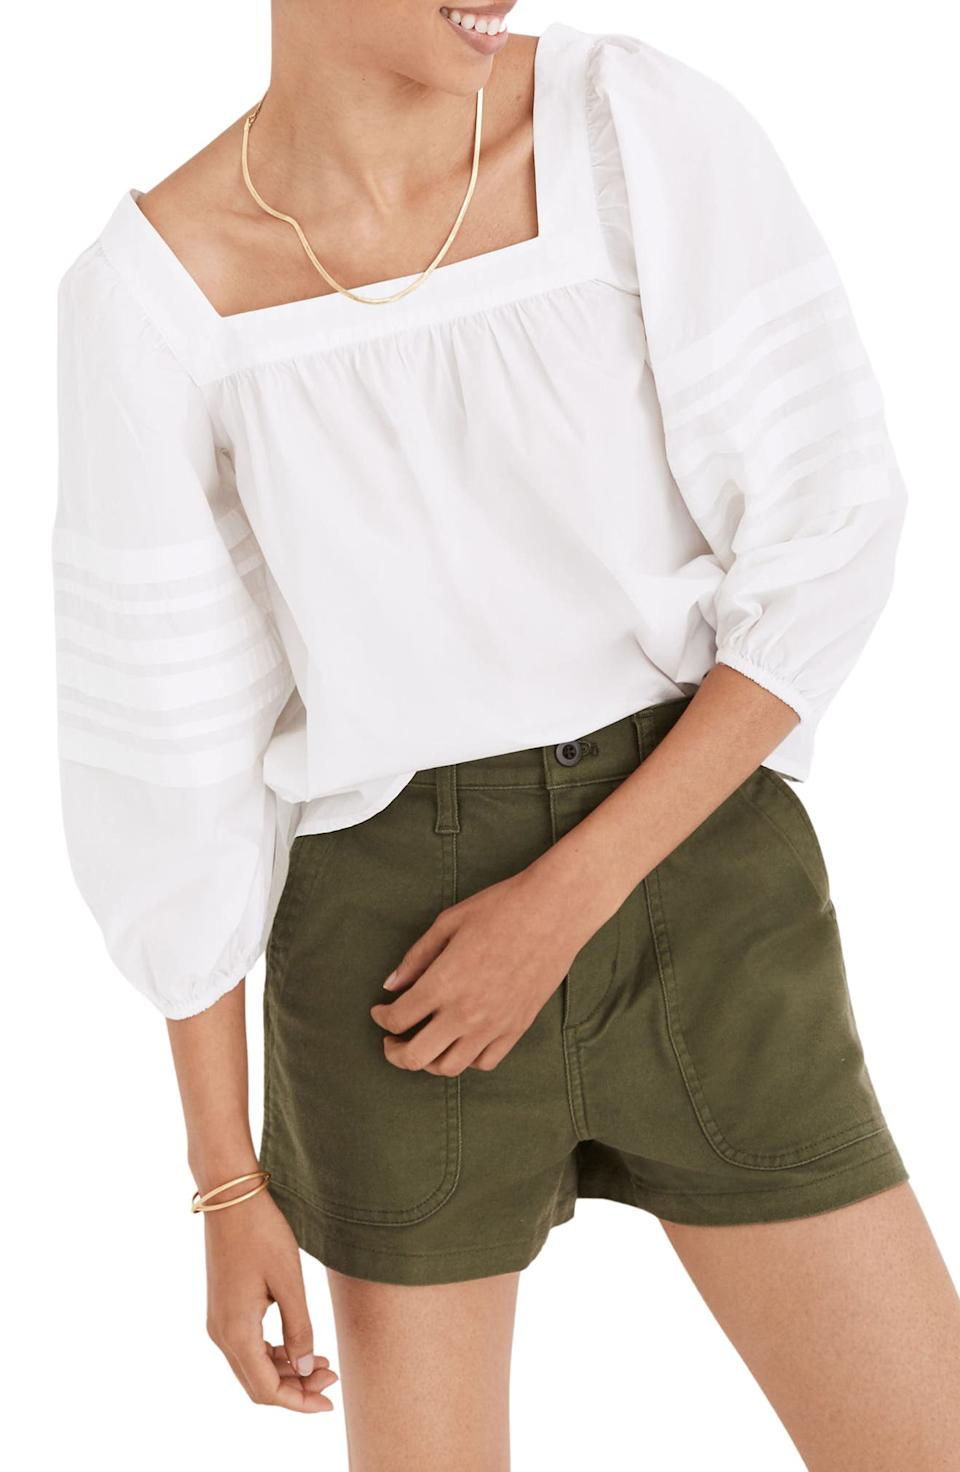 Madewell Square Neck Pleat Sleeve Top. Image via Nordstrom.